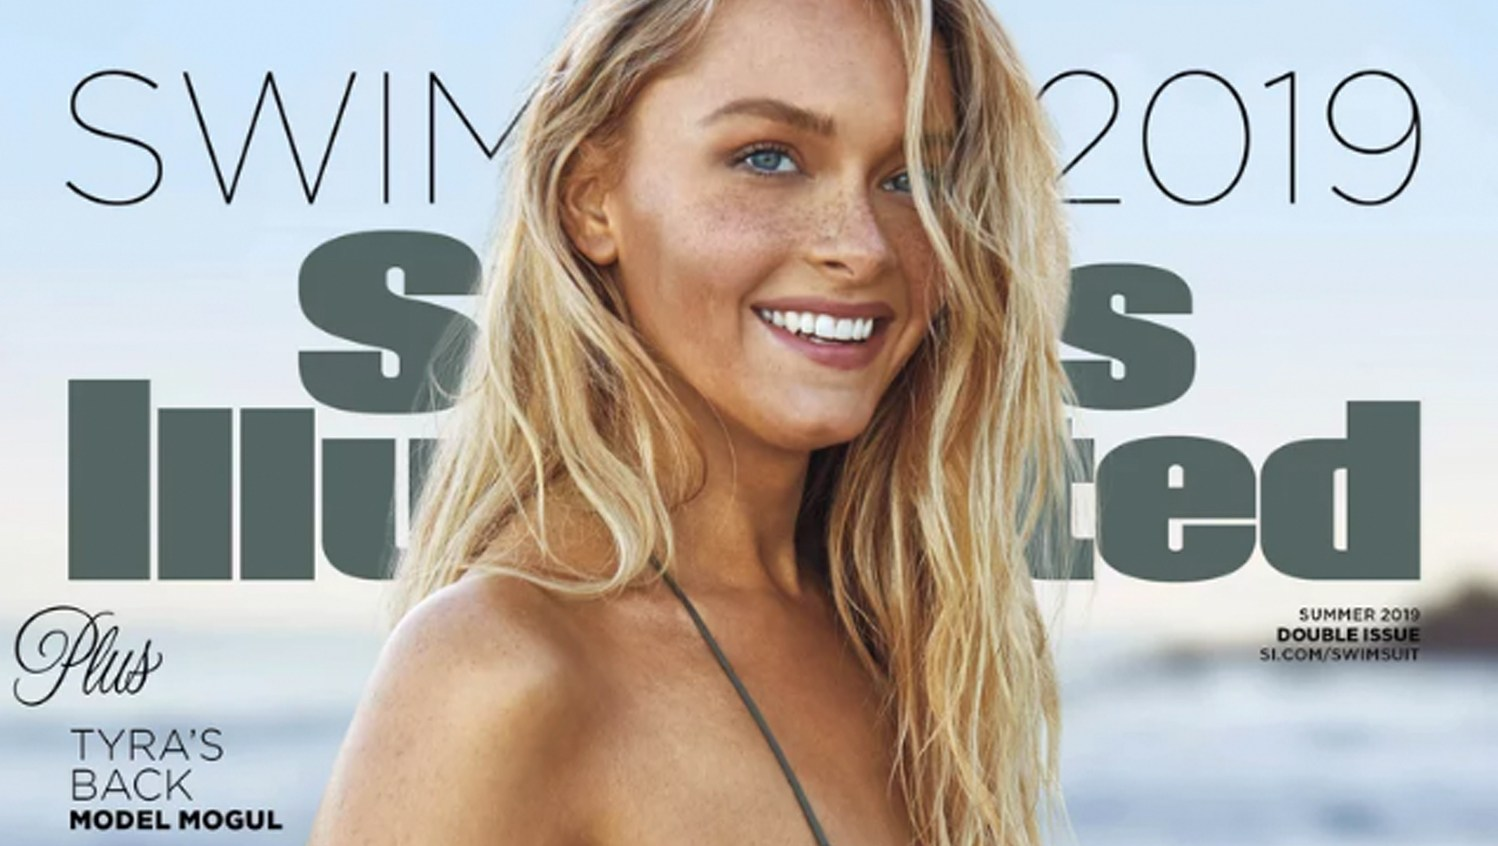 Camille Kostek Sports Illustrated Cover